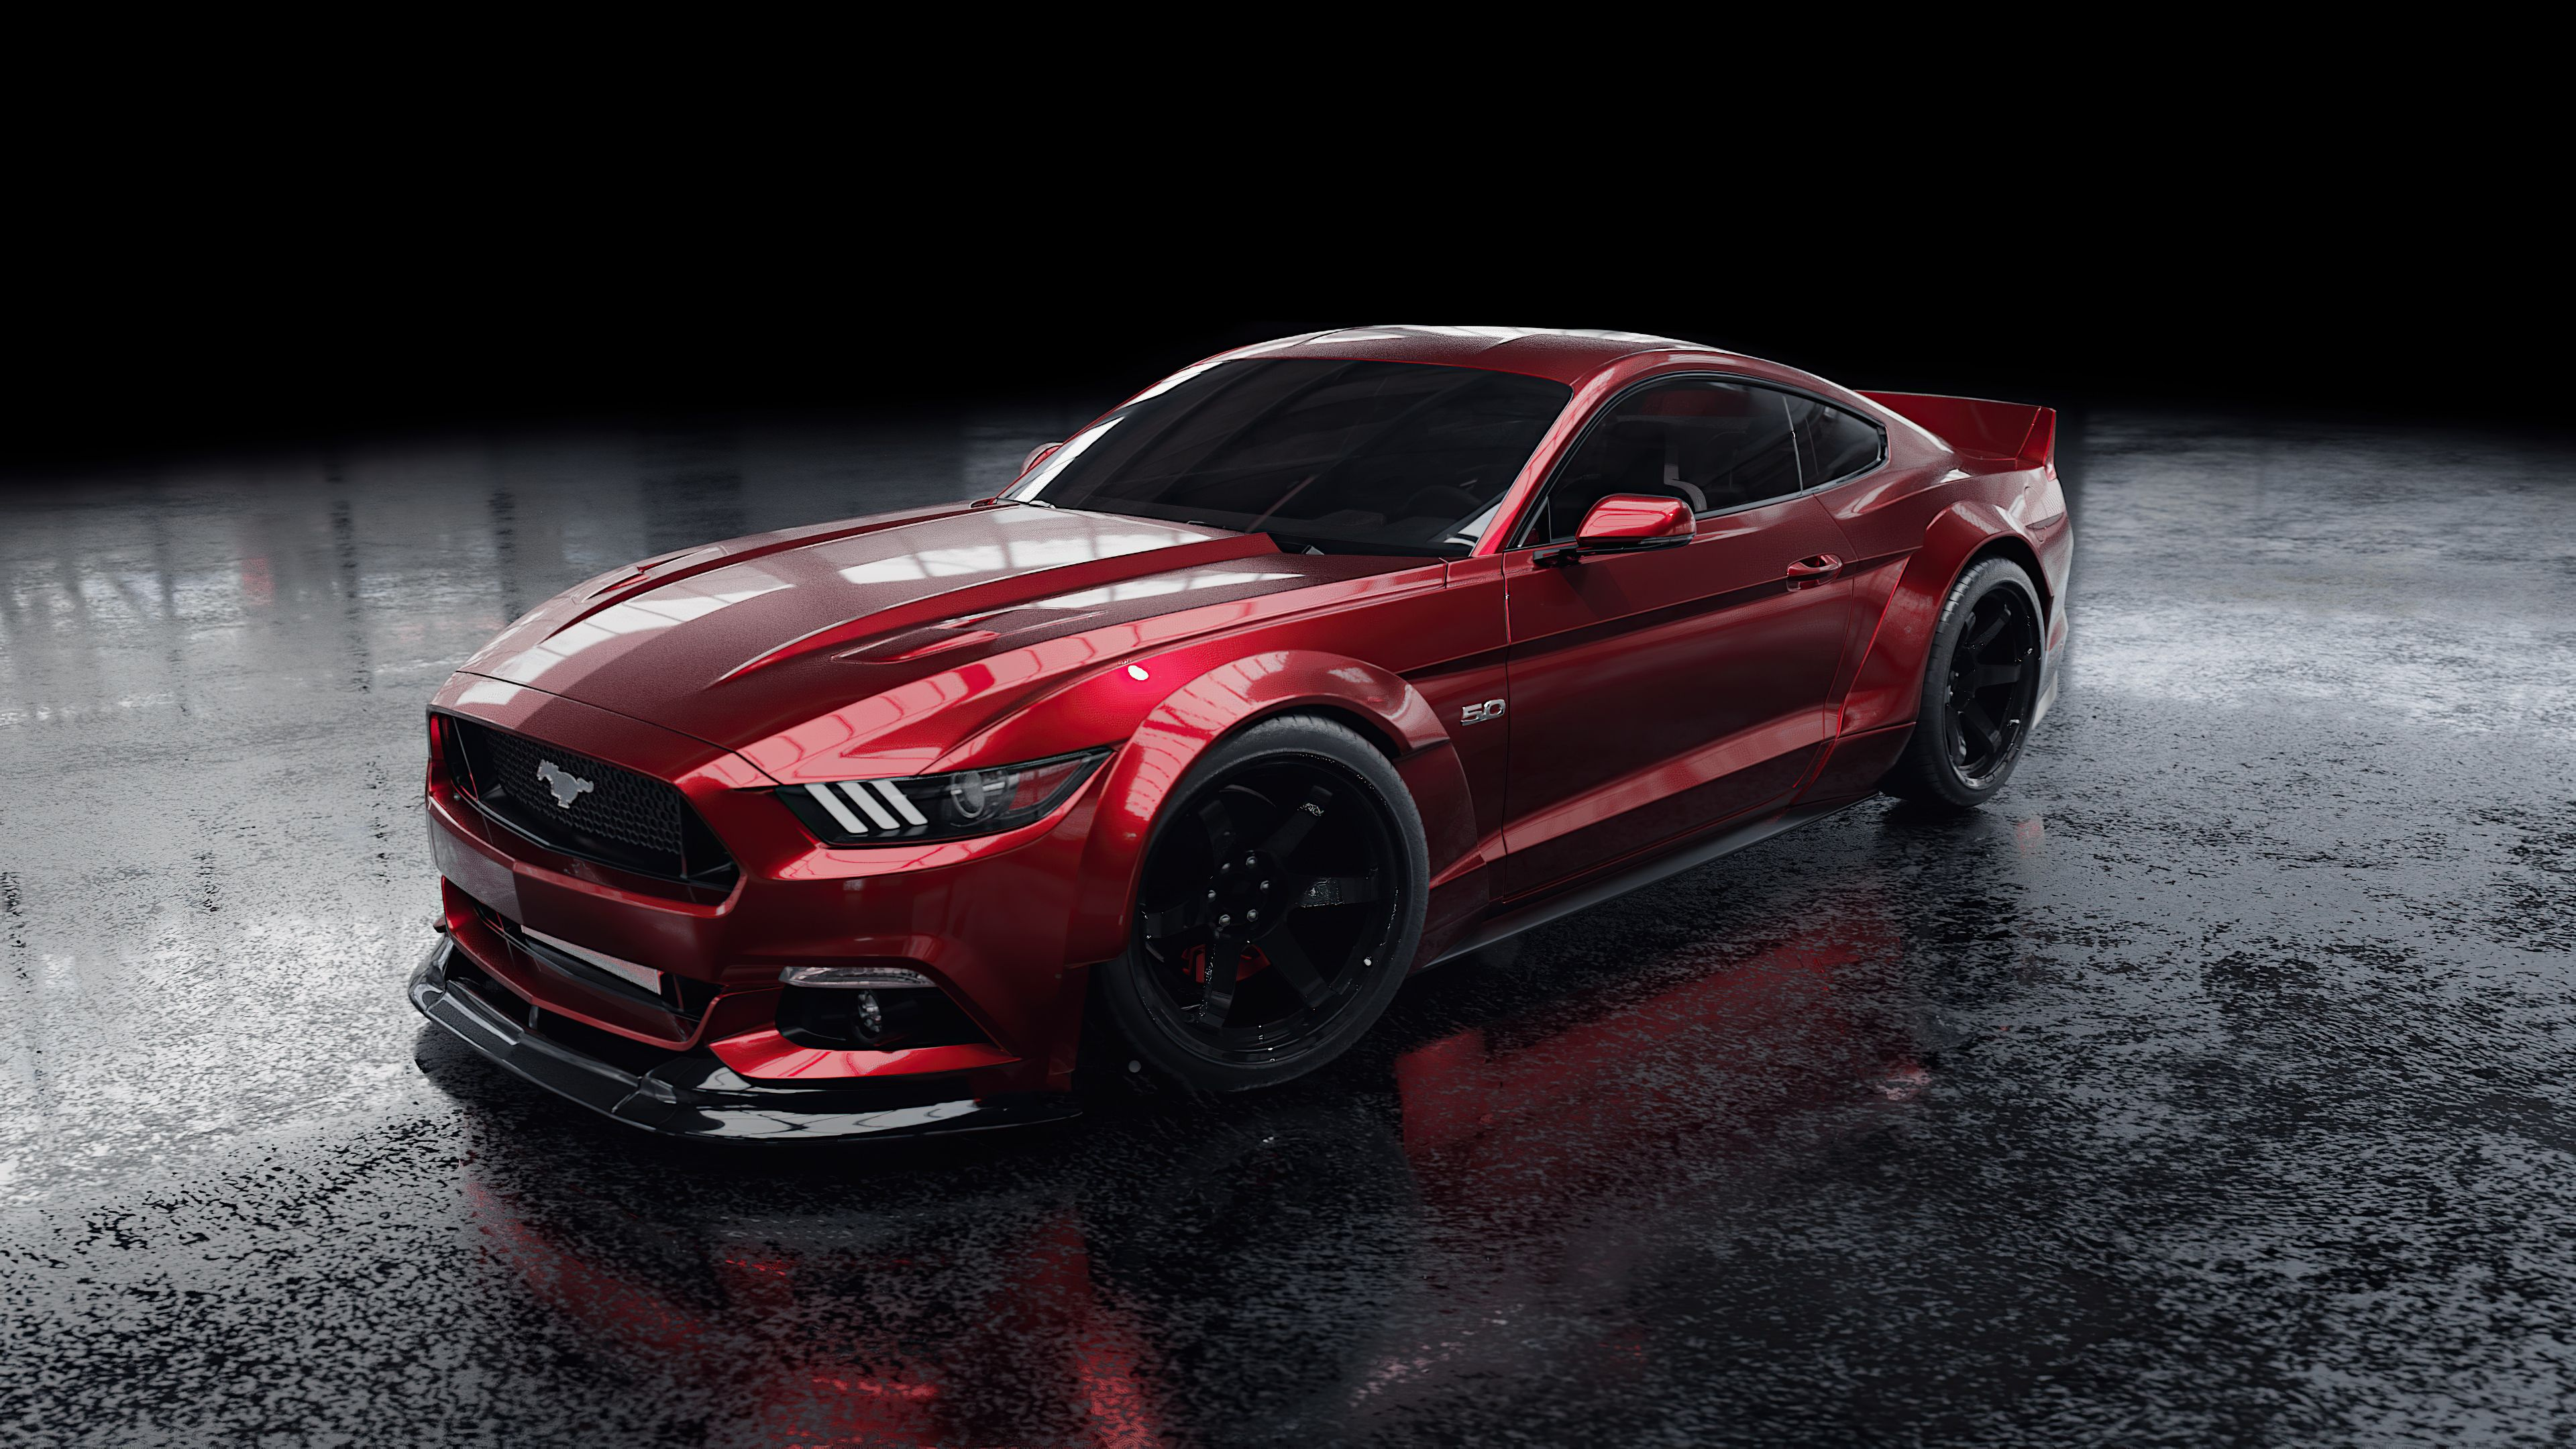 Red Ford Mustang 4k Red Ford Mustang 4k Wallpapers Ford Mustang Wallpaper Ford Mustang Mustang